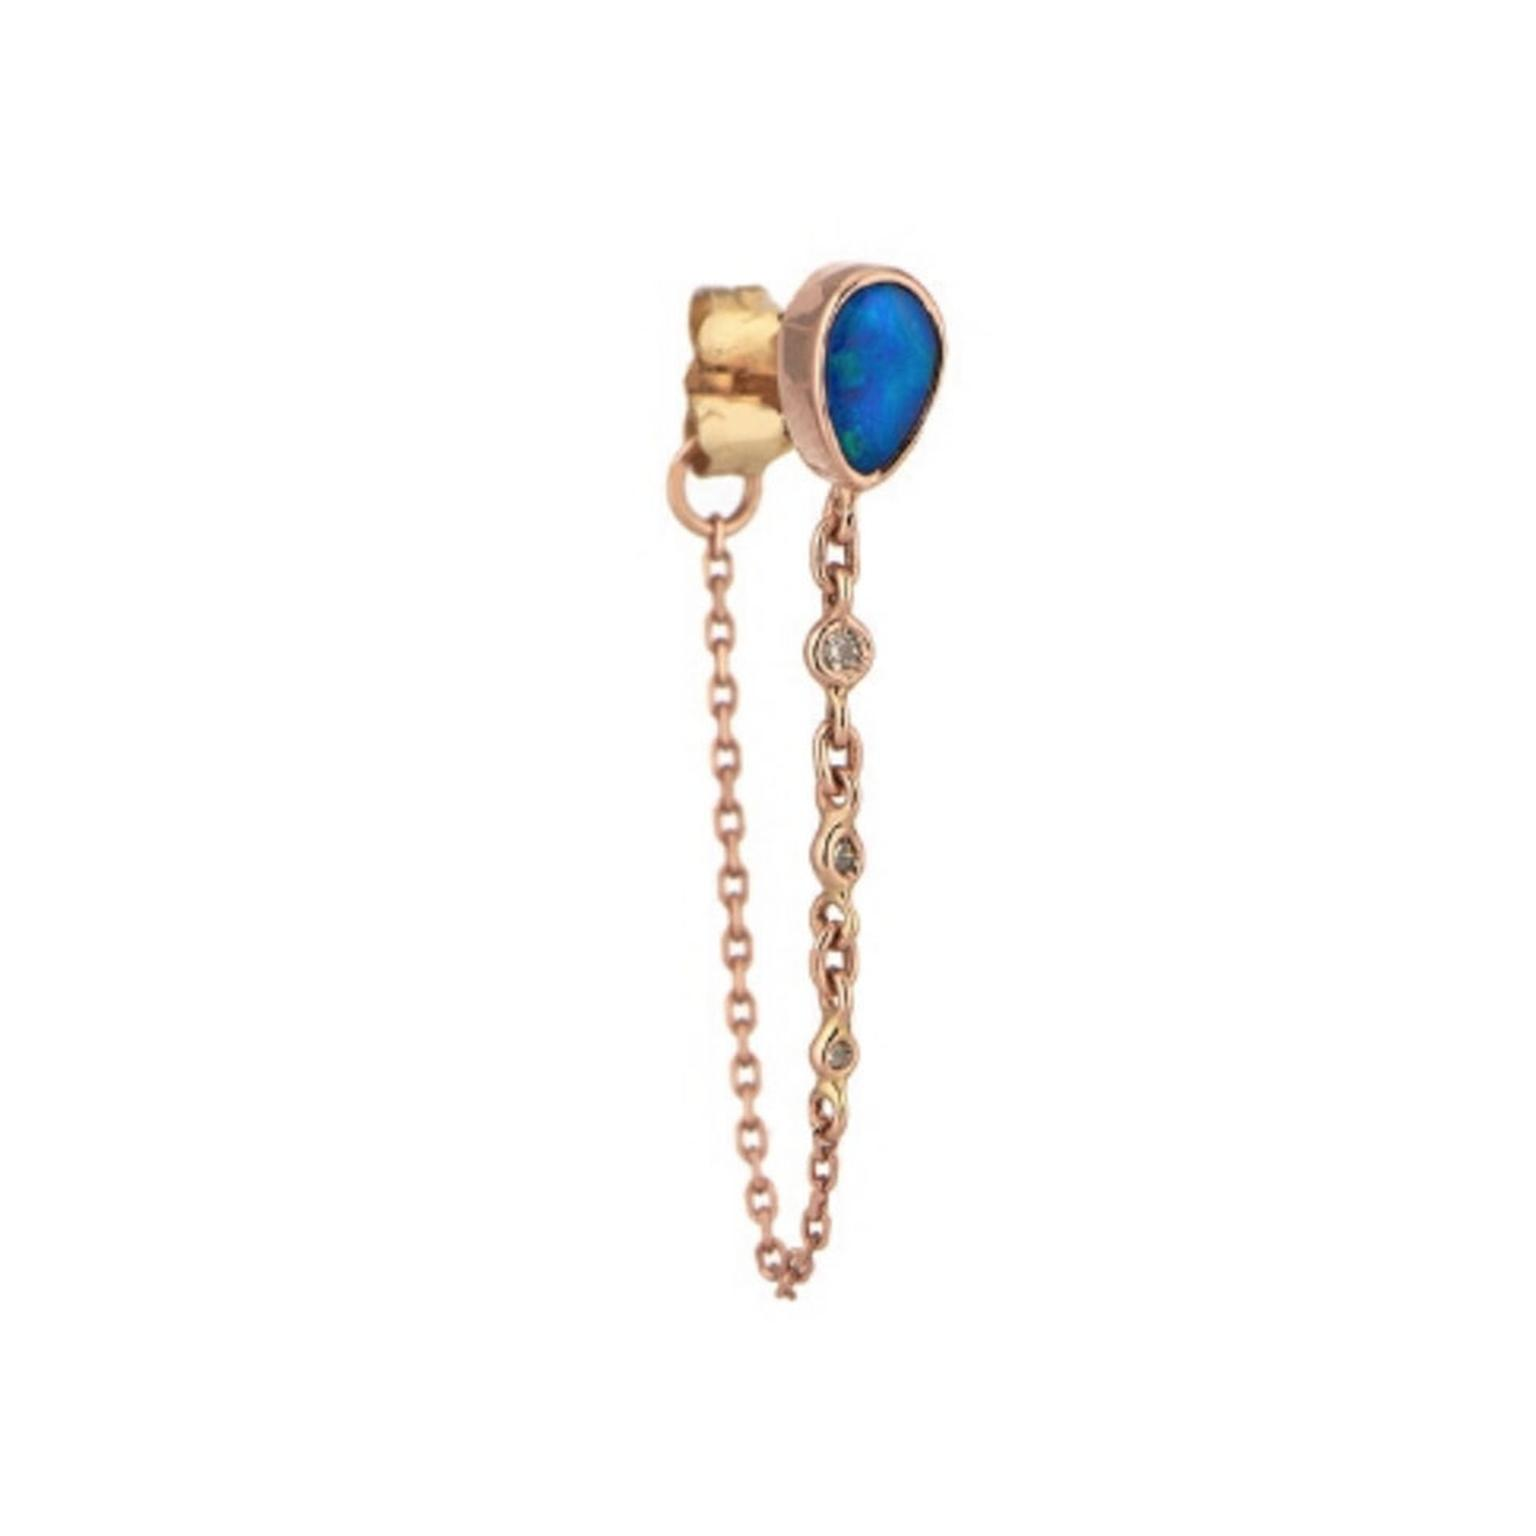 Celine d'Aoust single pearl, opal and diamond chain earring